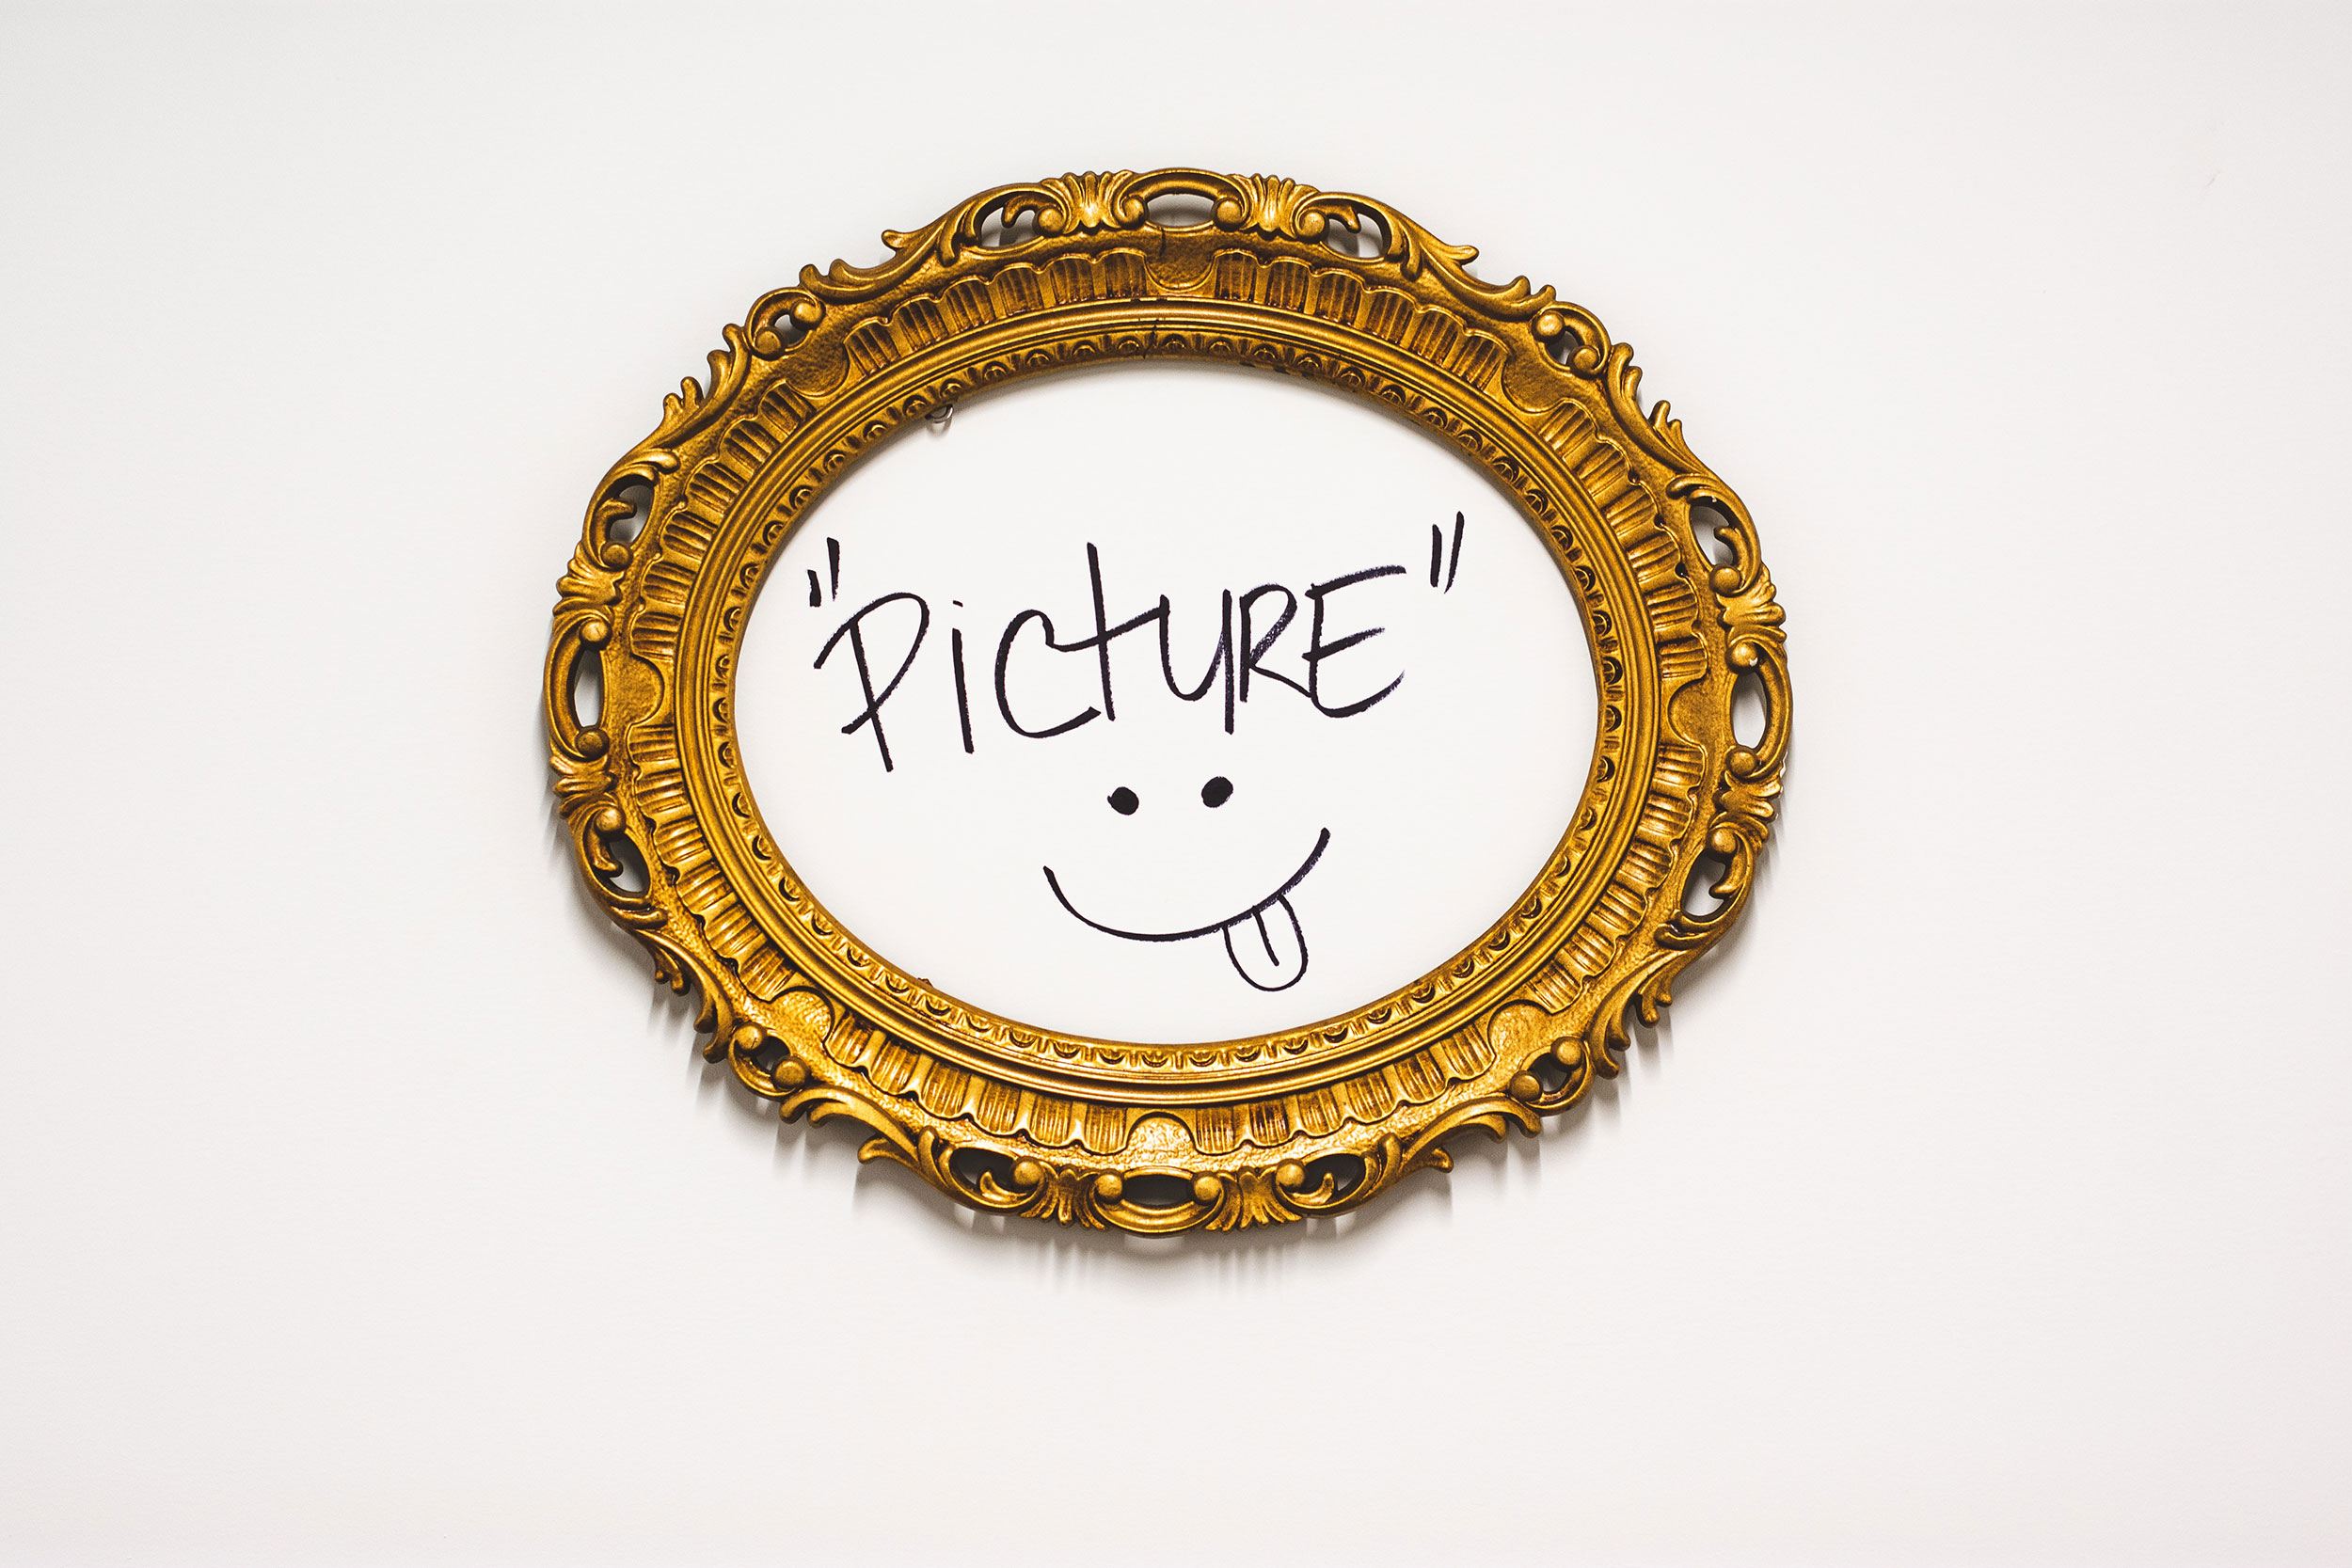 picture-illustration-in-frame